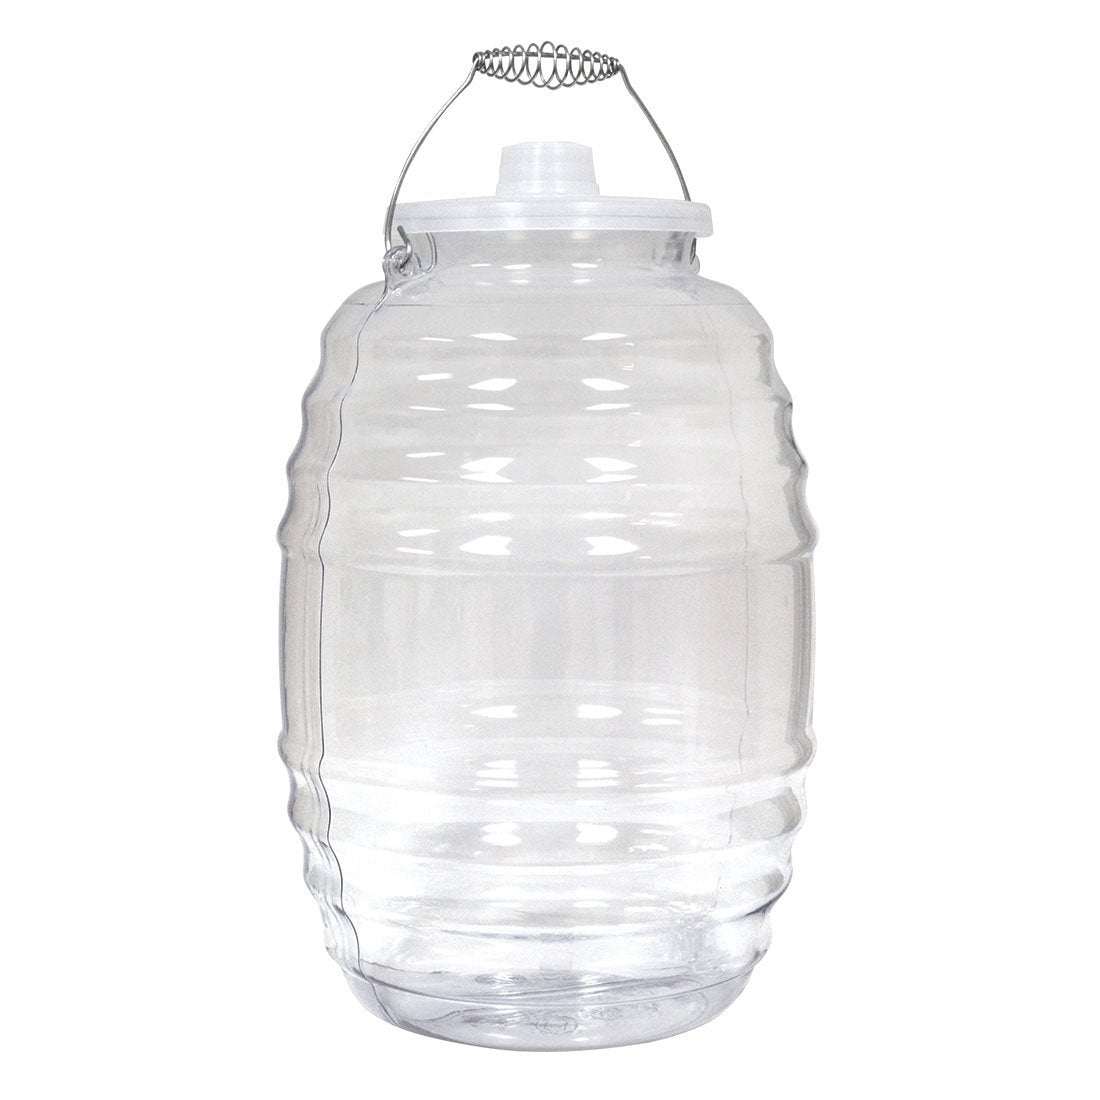 Big-Mouth 5 Gallon, PVC Reusable Beverage Jug with Lid & Wire Handle